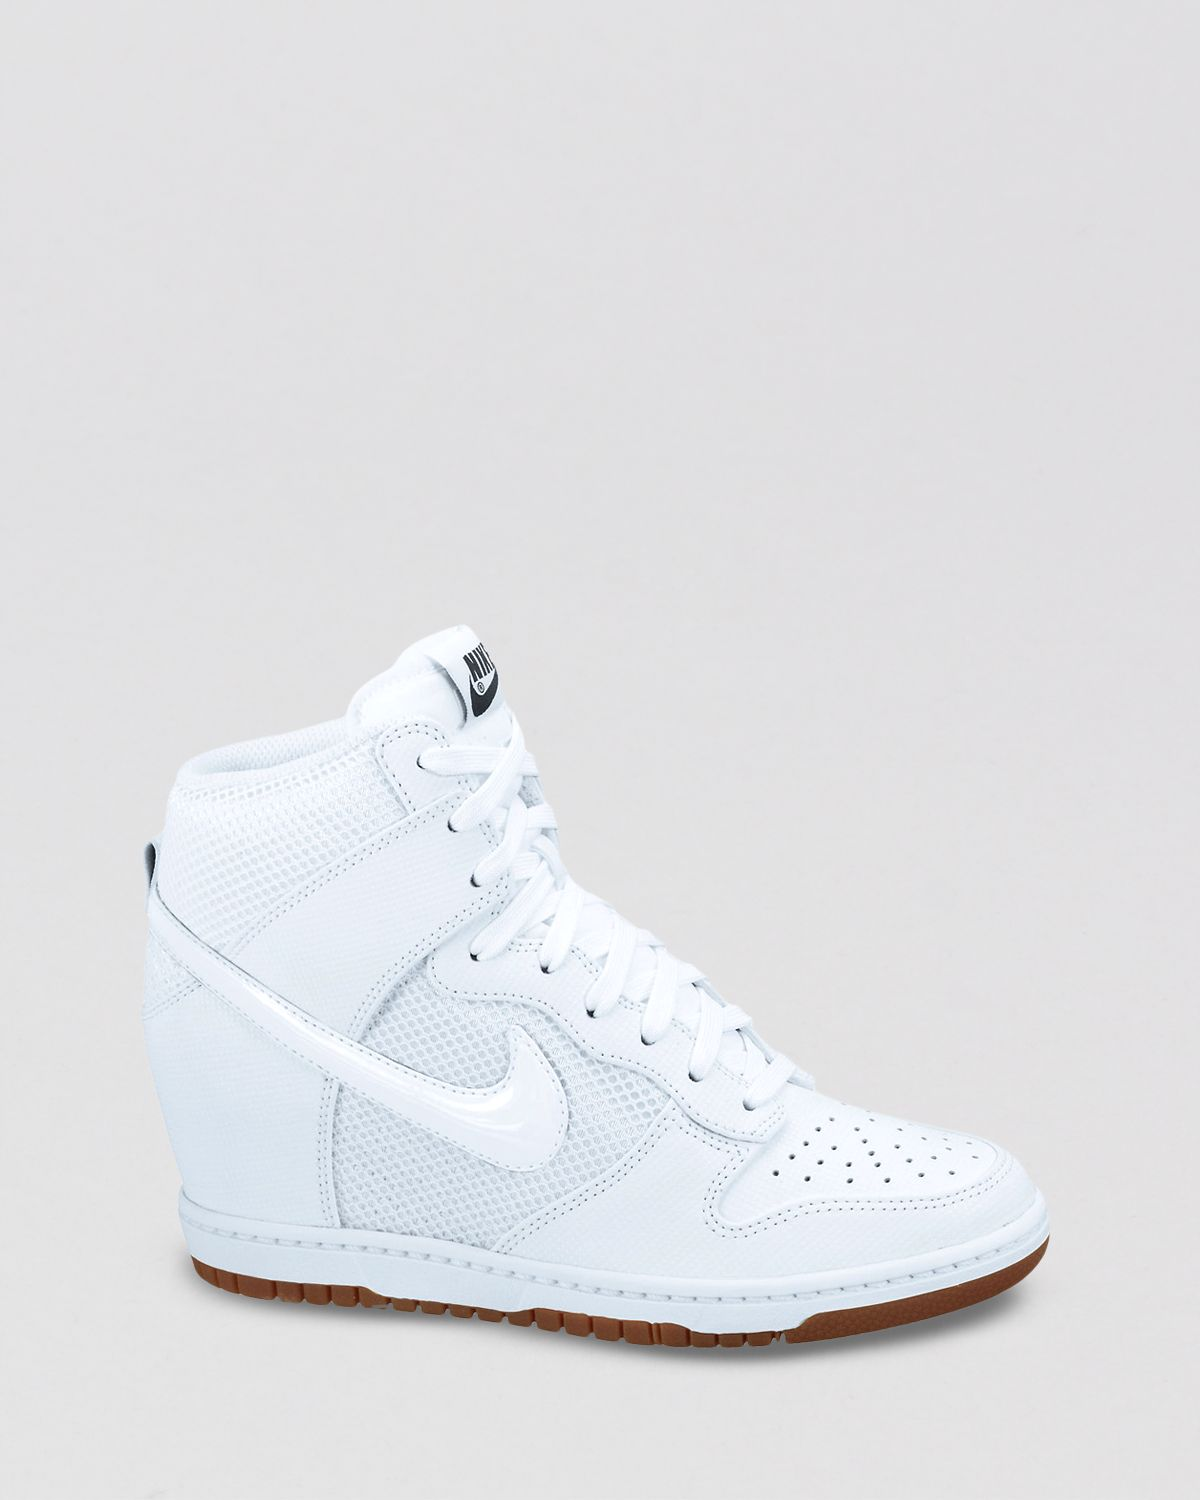 Lyst - Nike Lace Up High Top Sneaker Wedges Womens Dunk Sky Hi Mesh ... 3f7384424925